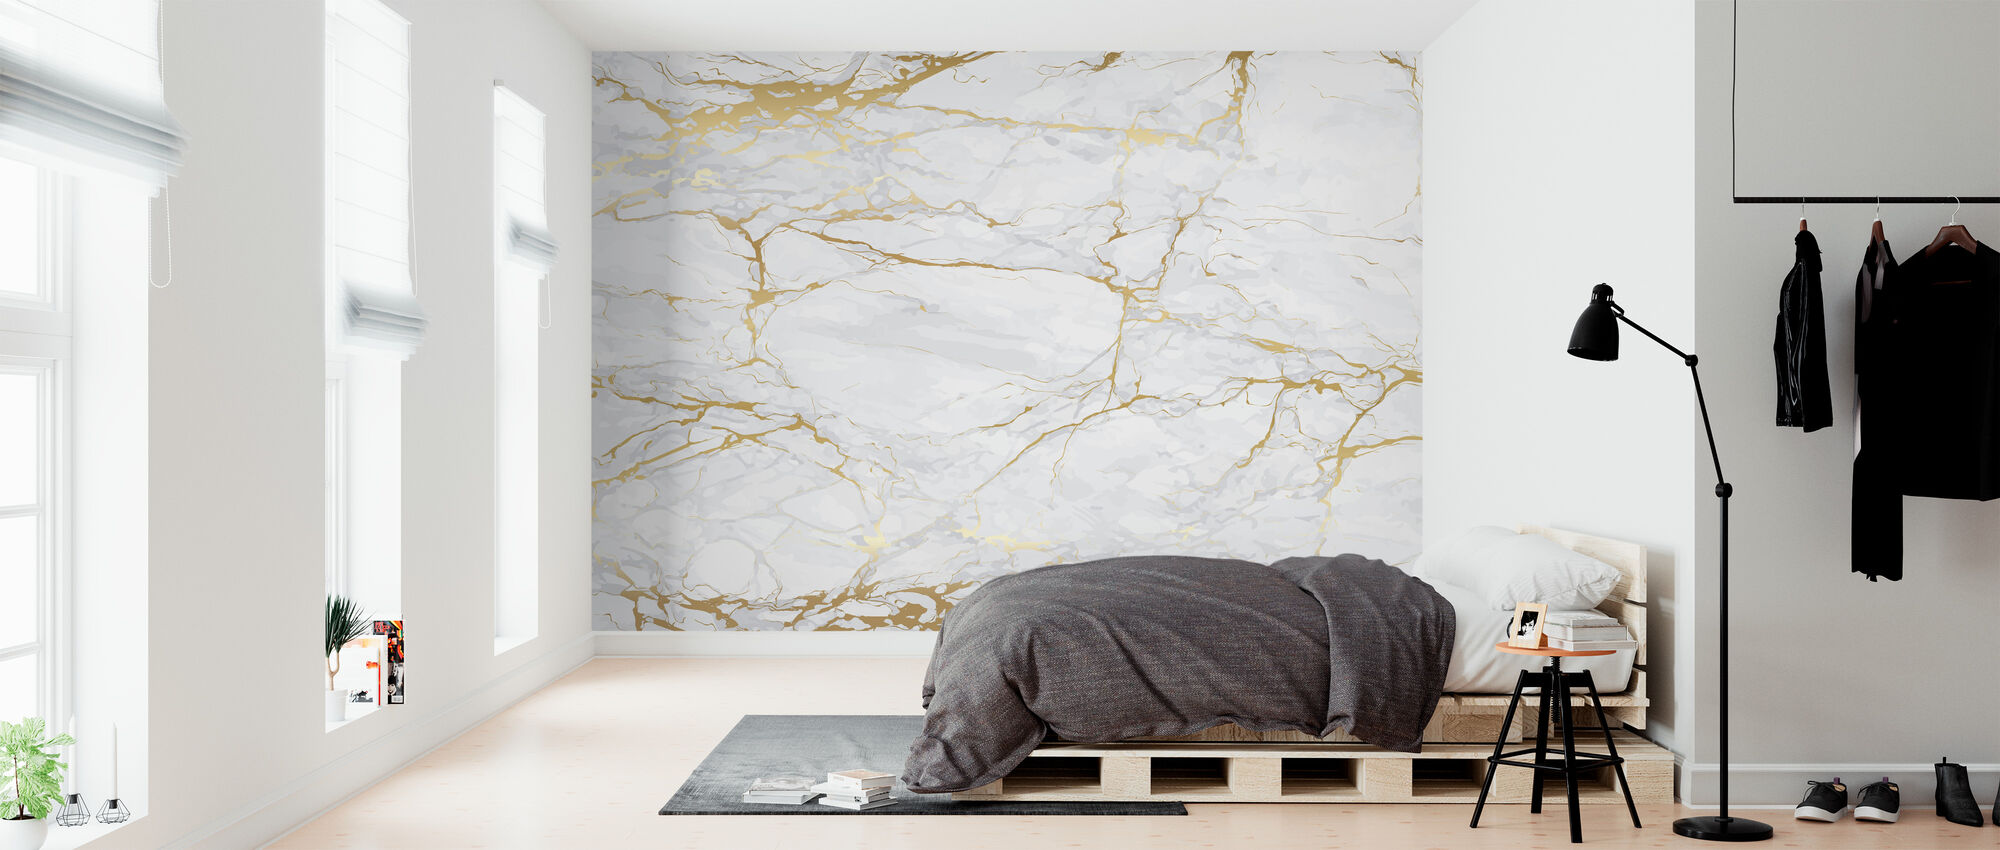 Marble with golden veins - Wallpaper - Bedroom